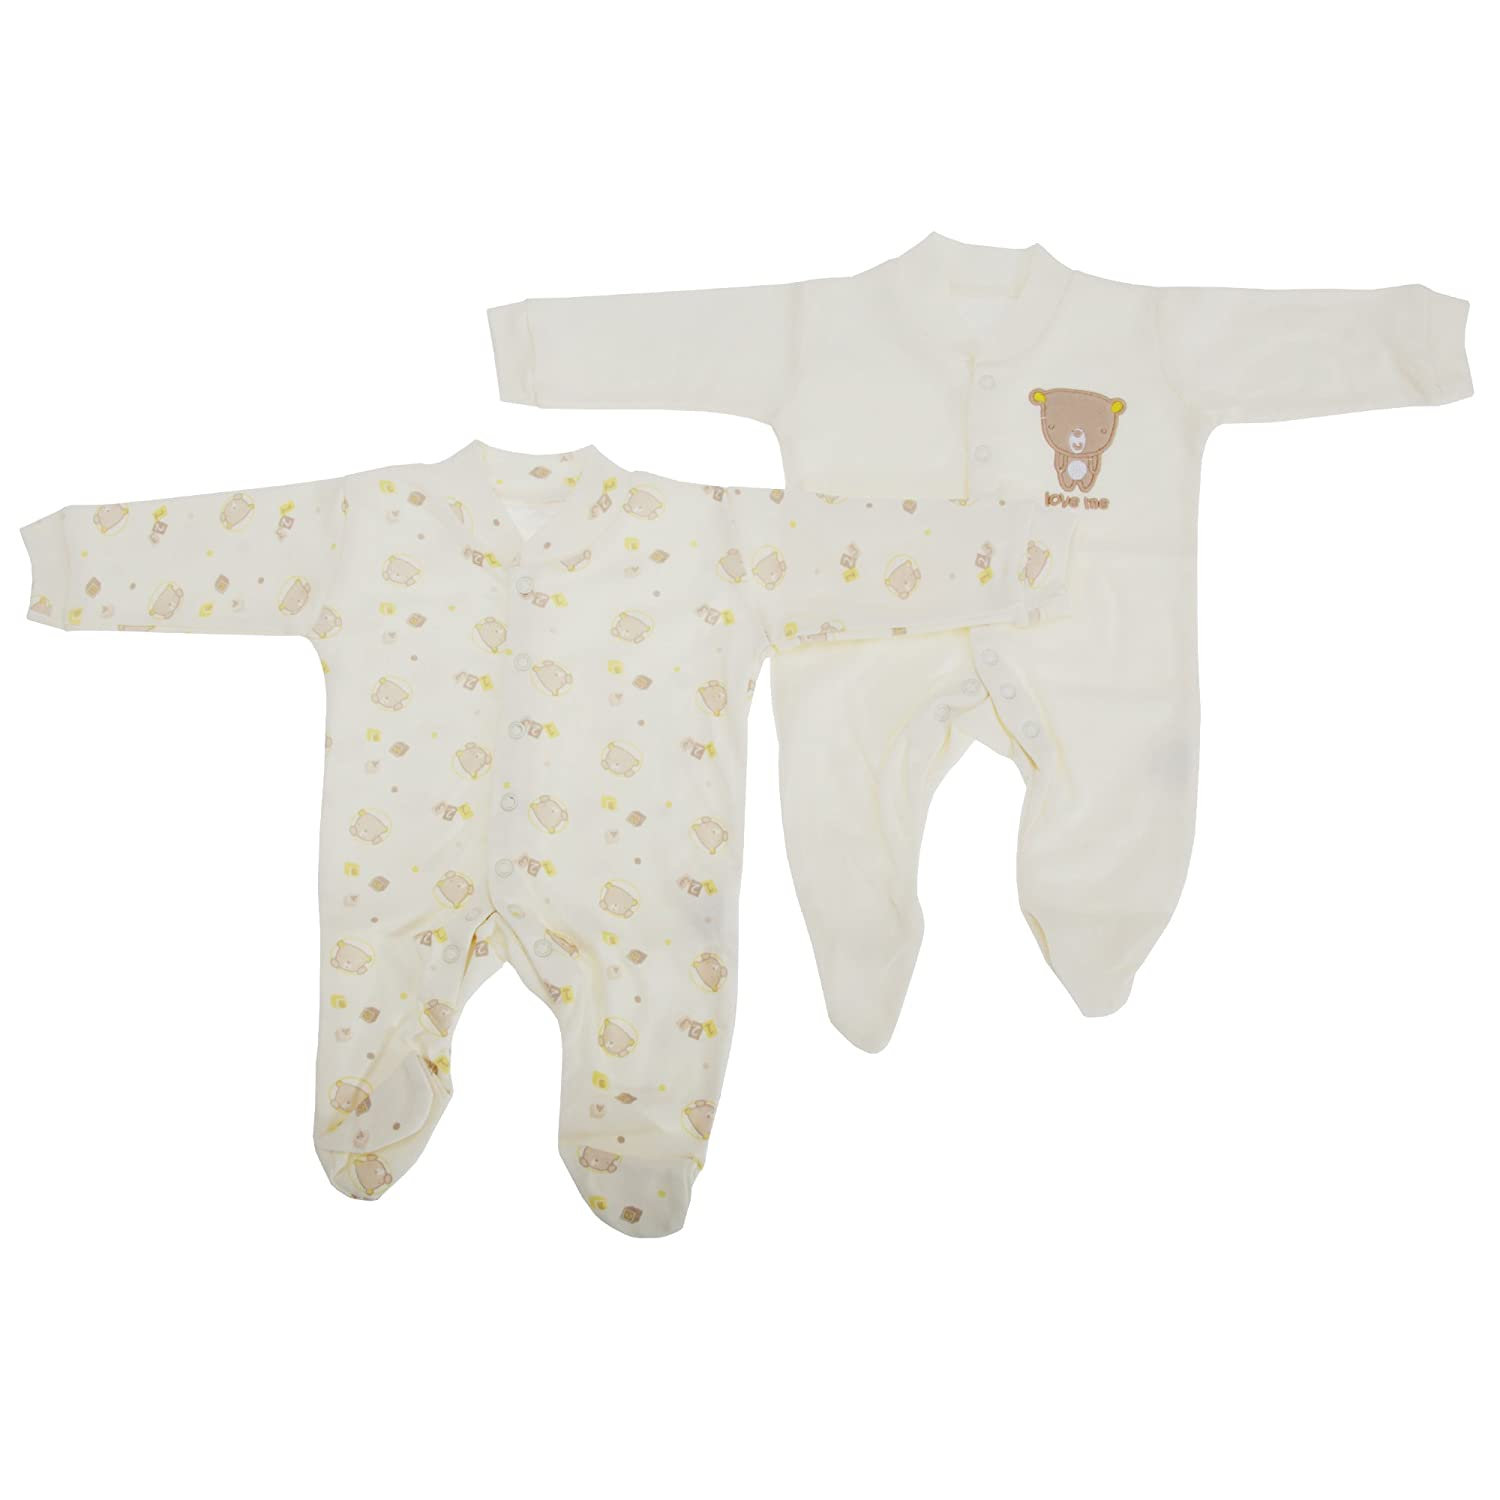 0da4400ec Baby Patterned Long Sleeve Sleep Suits Boy, Girl And Unisex Options (Pack  Of 2) (Height: 56-62cm Weight: 6.5kg (0-3 Months)) (Cream): Amazon.co.uk:  Baby